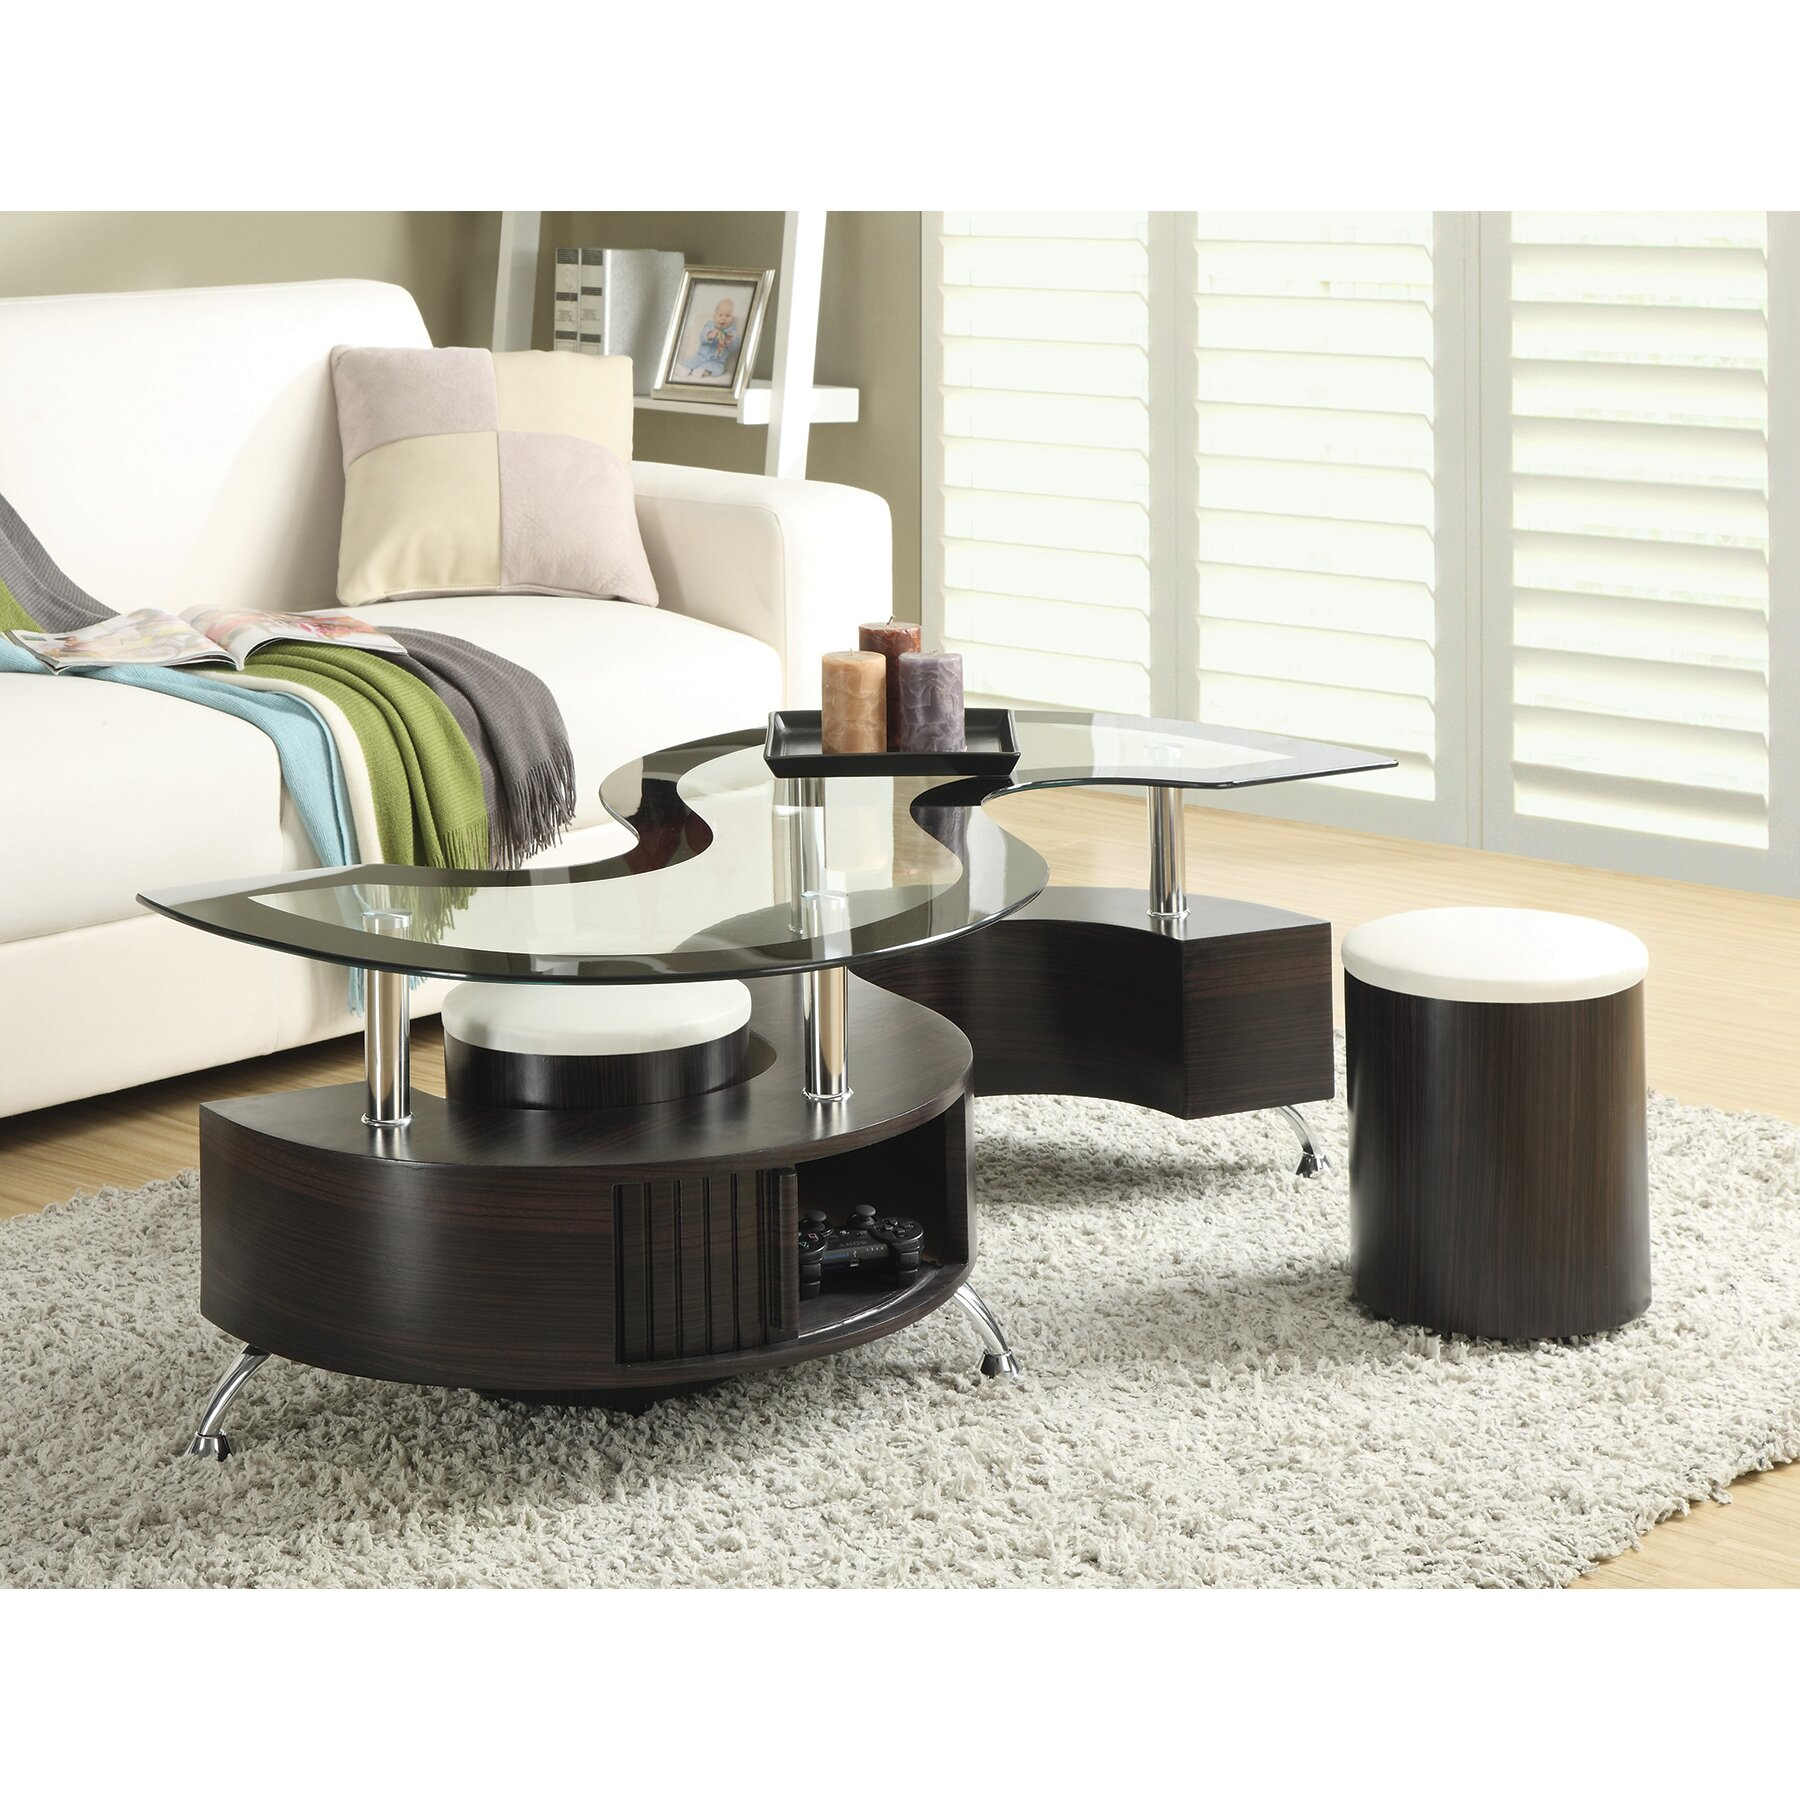 3 Piece Coffee Table SetCoffeTable